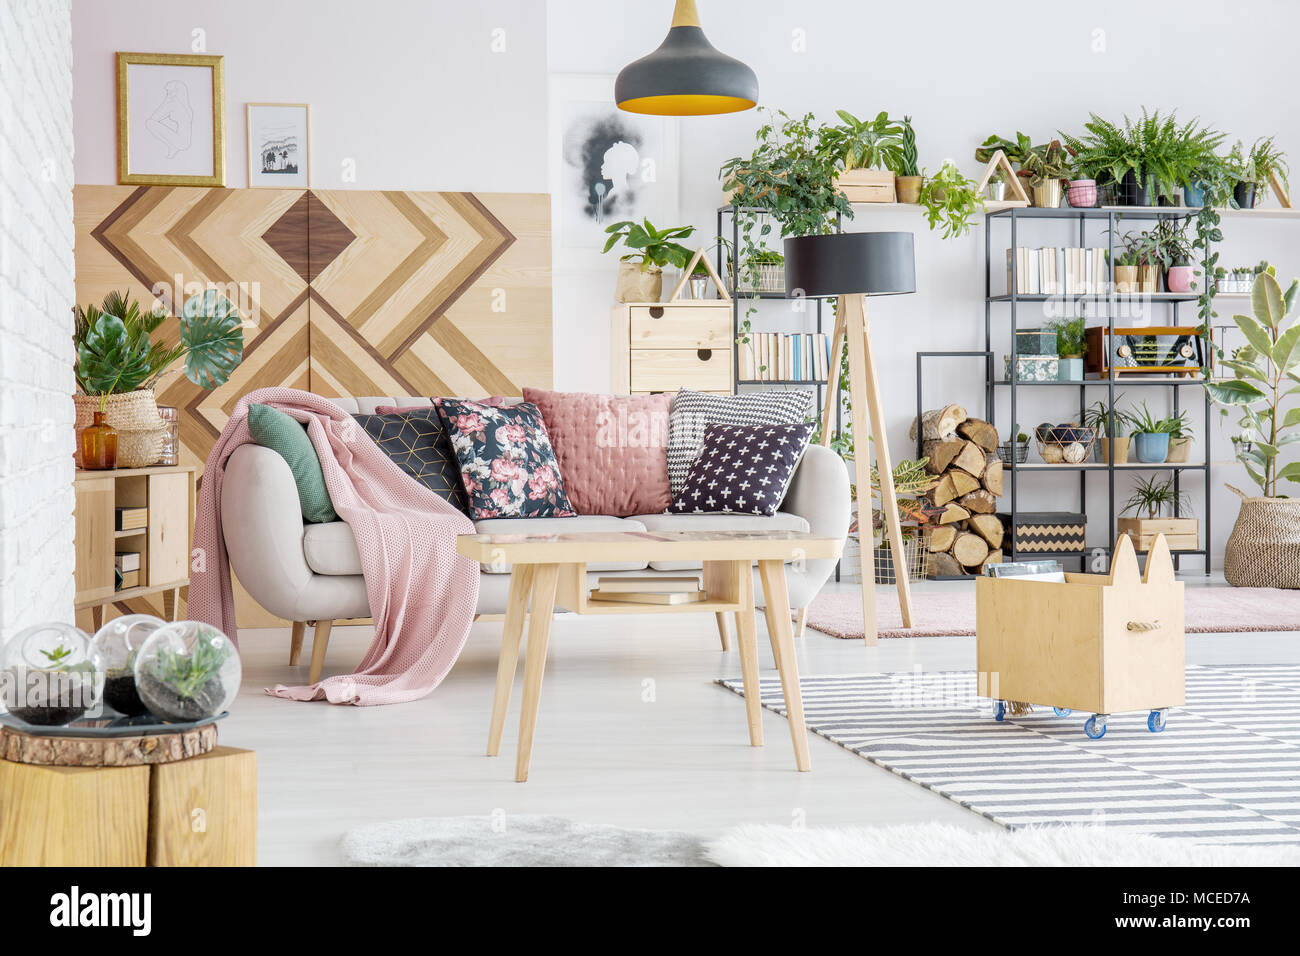 Green, potted plants in bright living room interior with wooden furniture and pillows on the couch - Stock Image